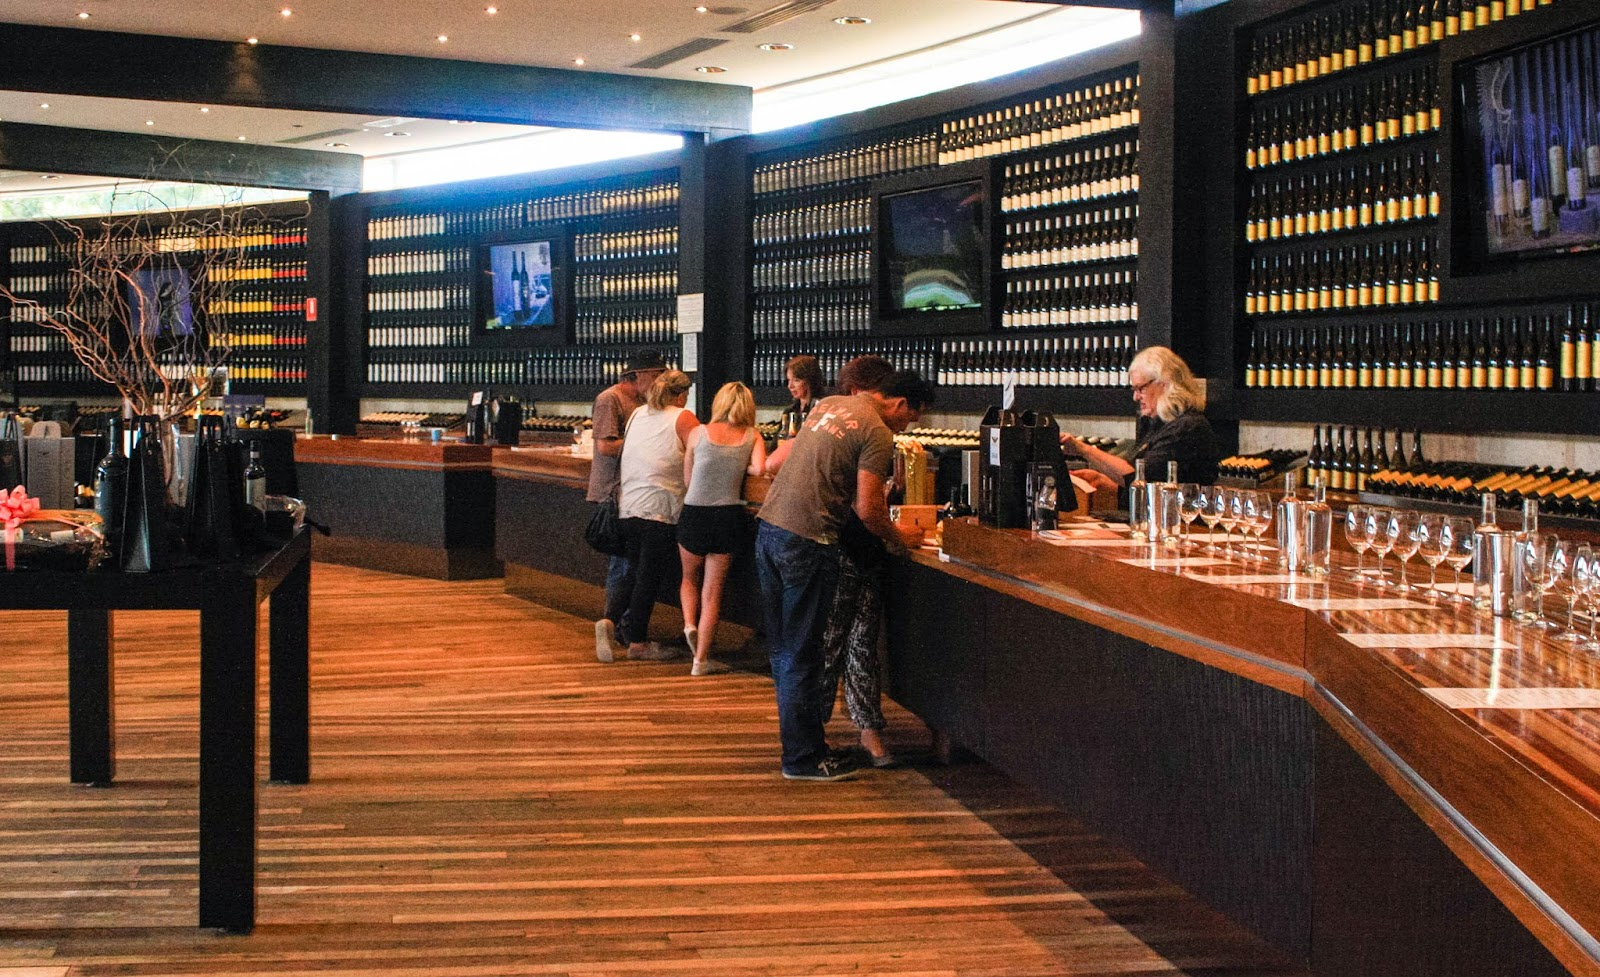 eden valley chat rooms Stage door wine co are producers of premium riesling, shiraz and cabernet sauvignon wines from the eden valley in the barossa south australia - member discounts.